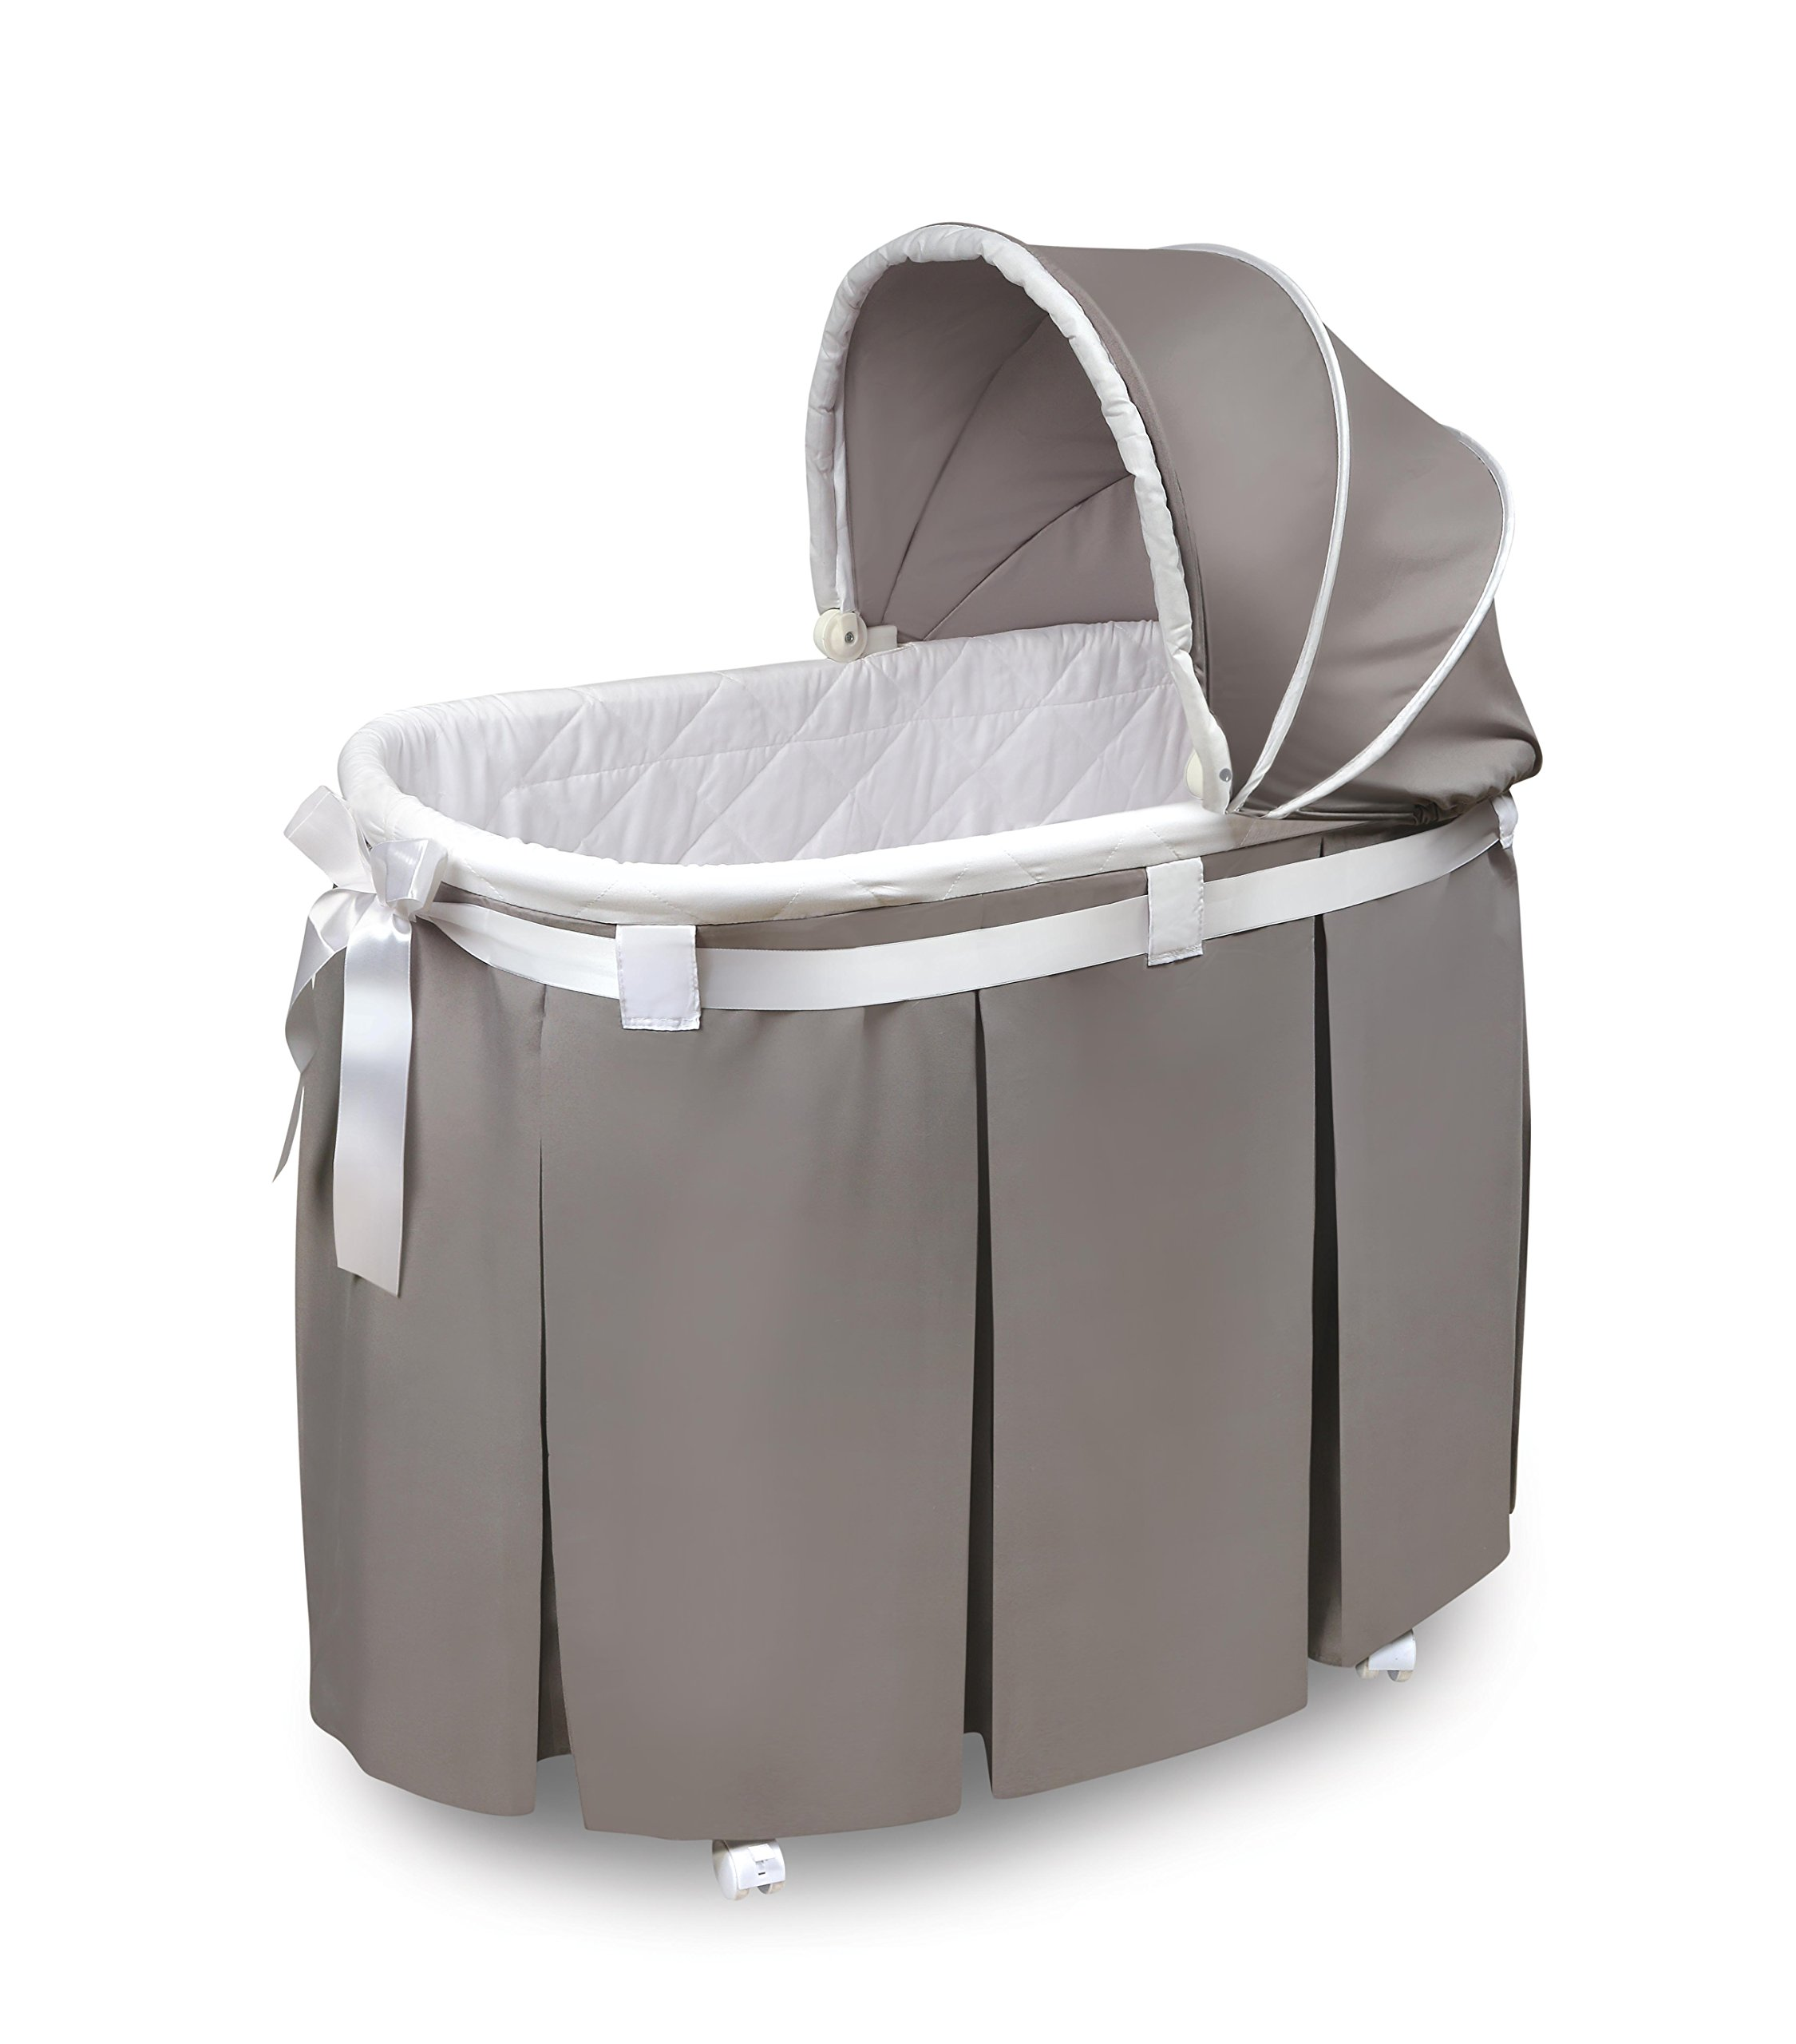 Wishes Oval Rocking Baby Bassinet with Bedding, Storage, and Pad by Badger Basket